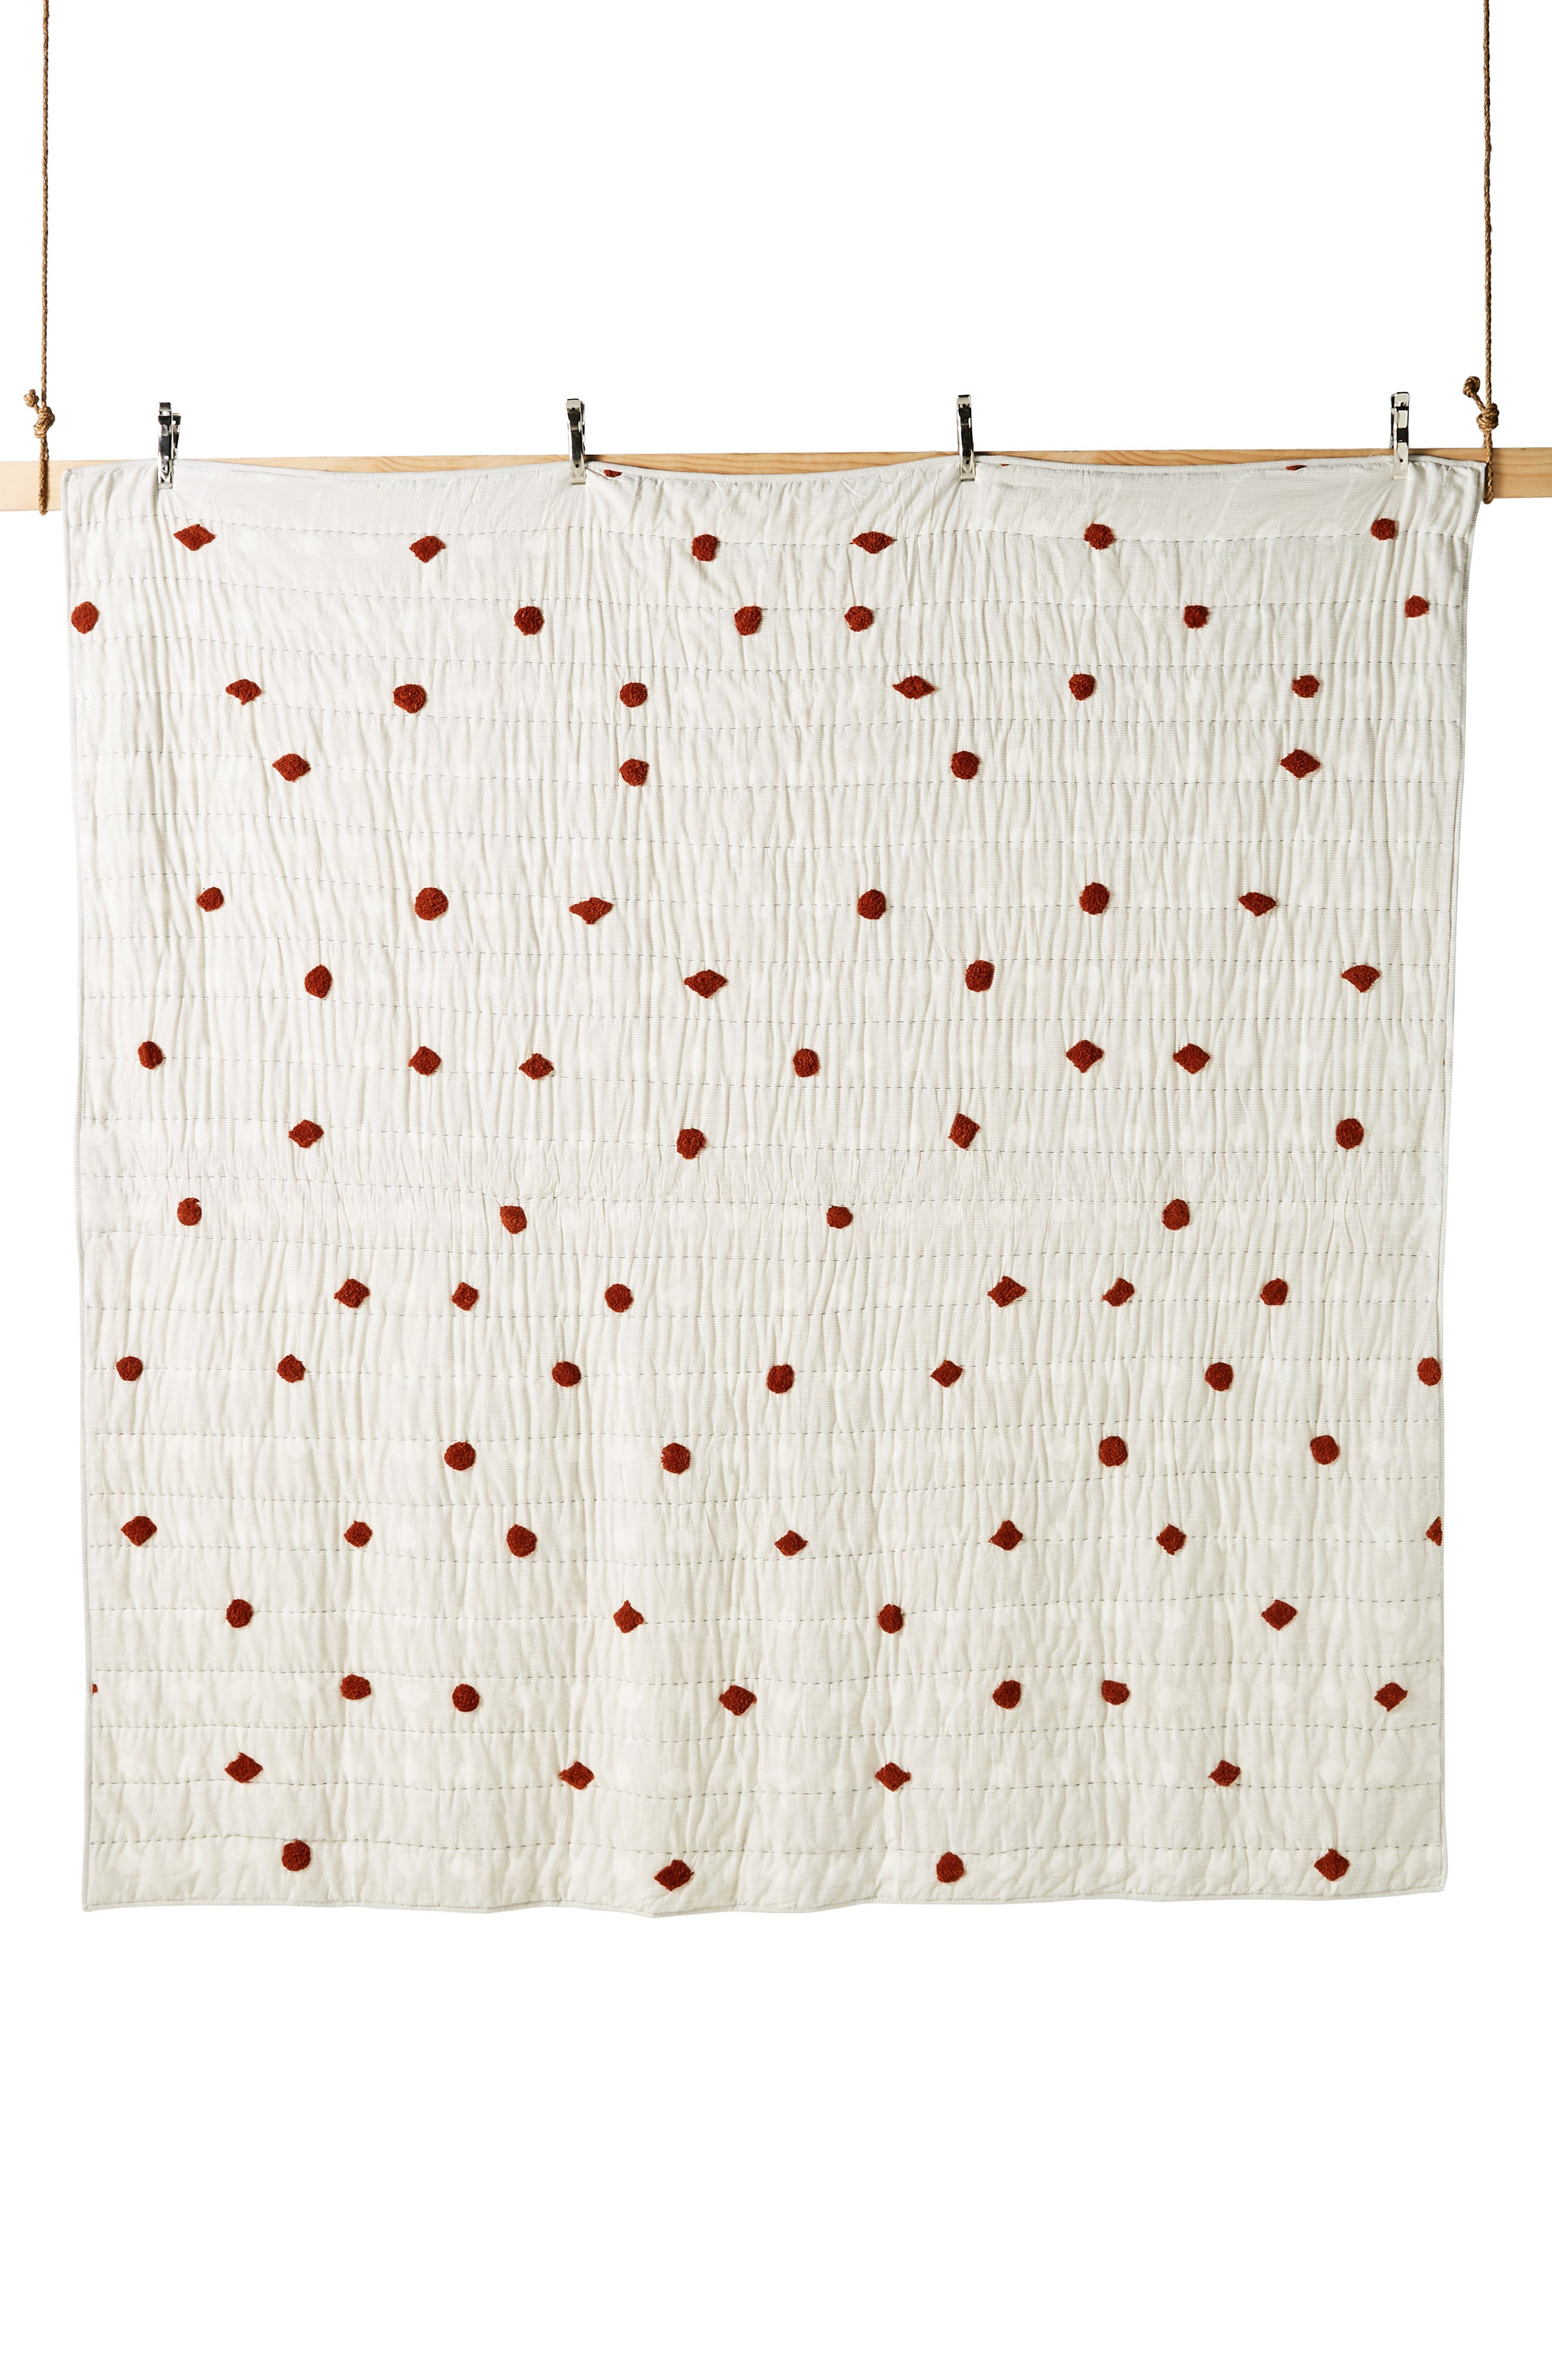 ANTHROPOLOGIE,                             Mesa Tufted Quilt,                             Alternate thumbnail 5, color,                             RUST